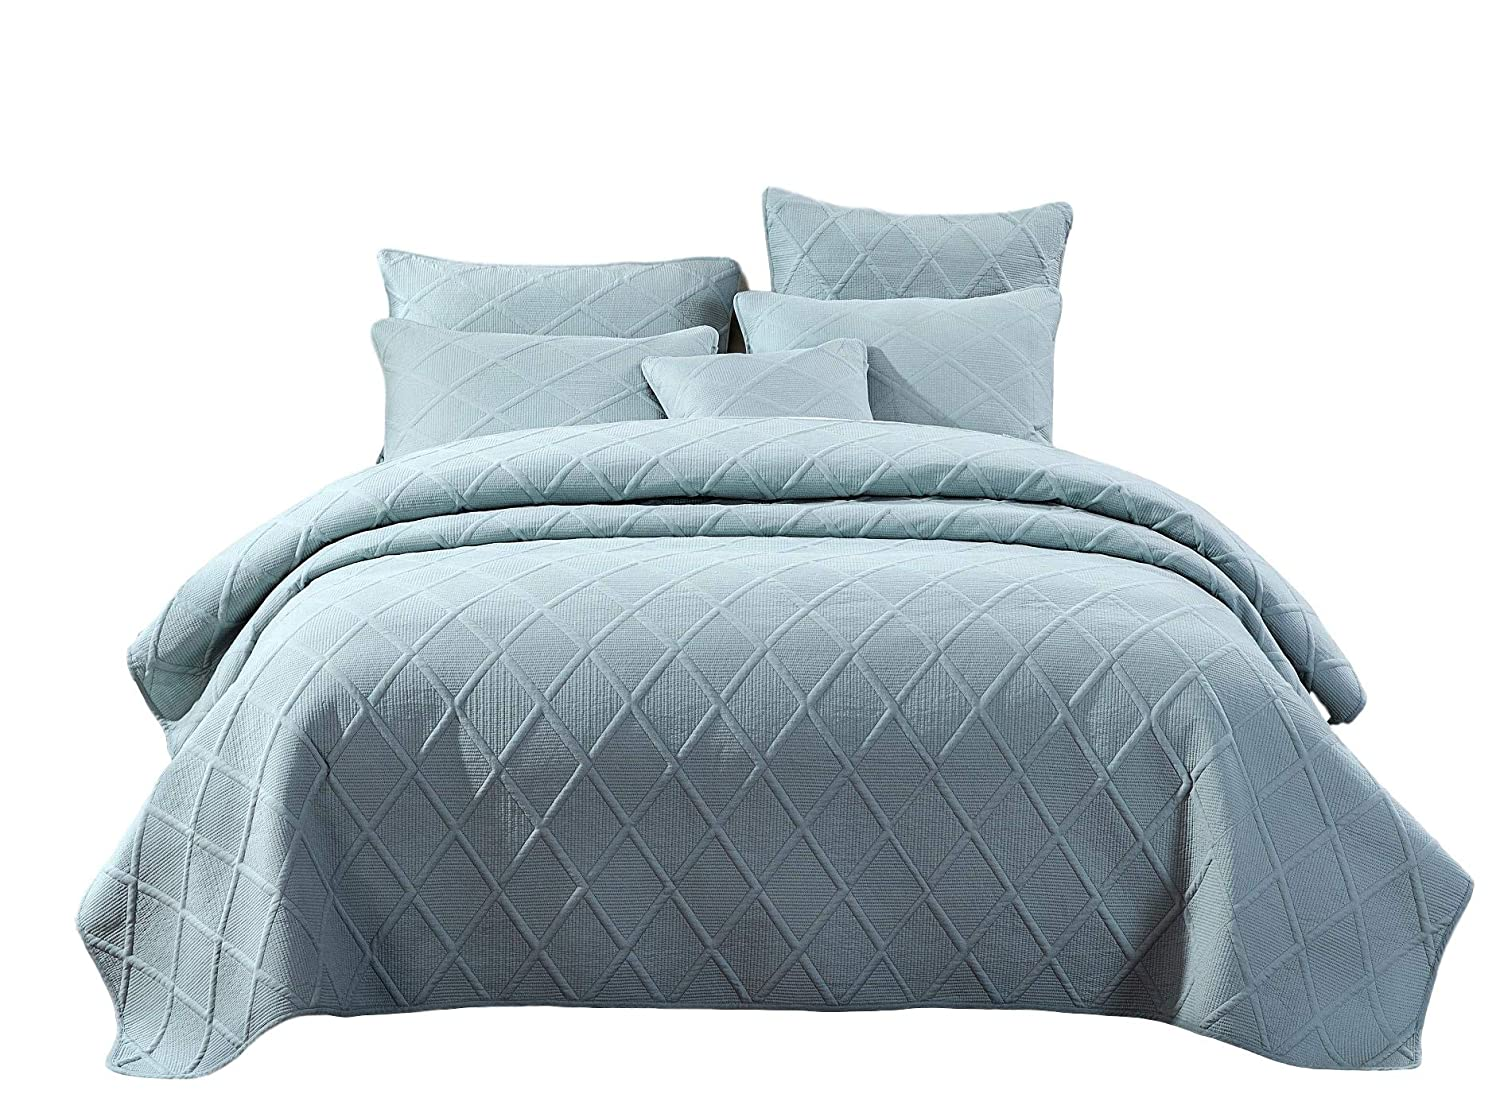 Bedding Lilac Matelasse Bedspread To Suit The PeopleS Convenience